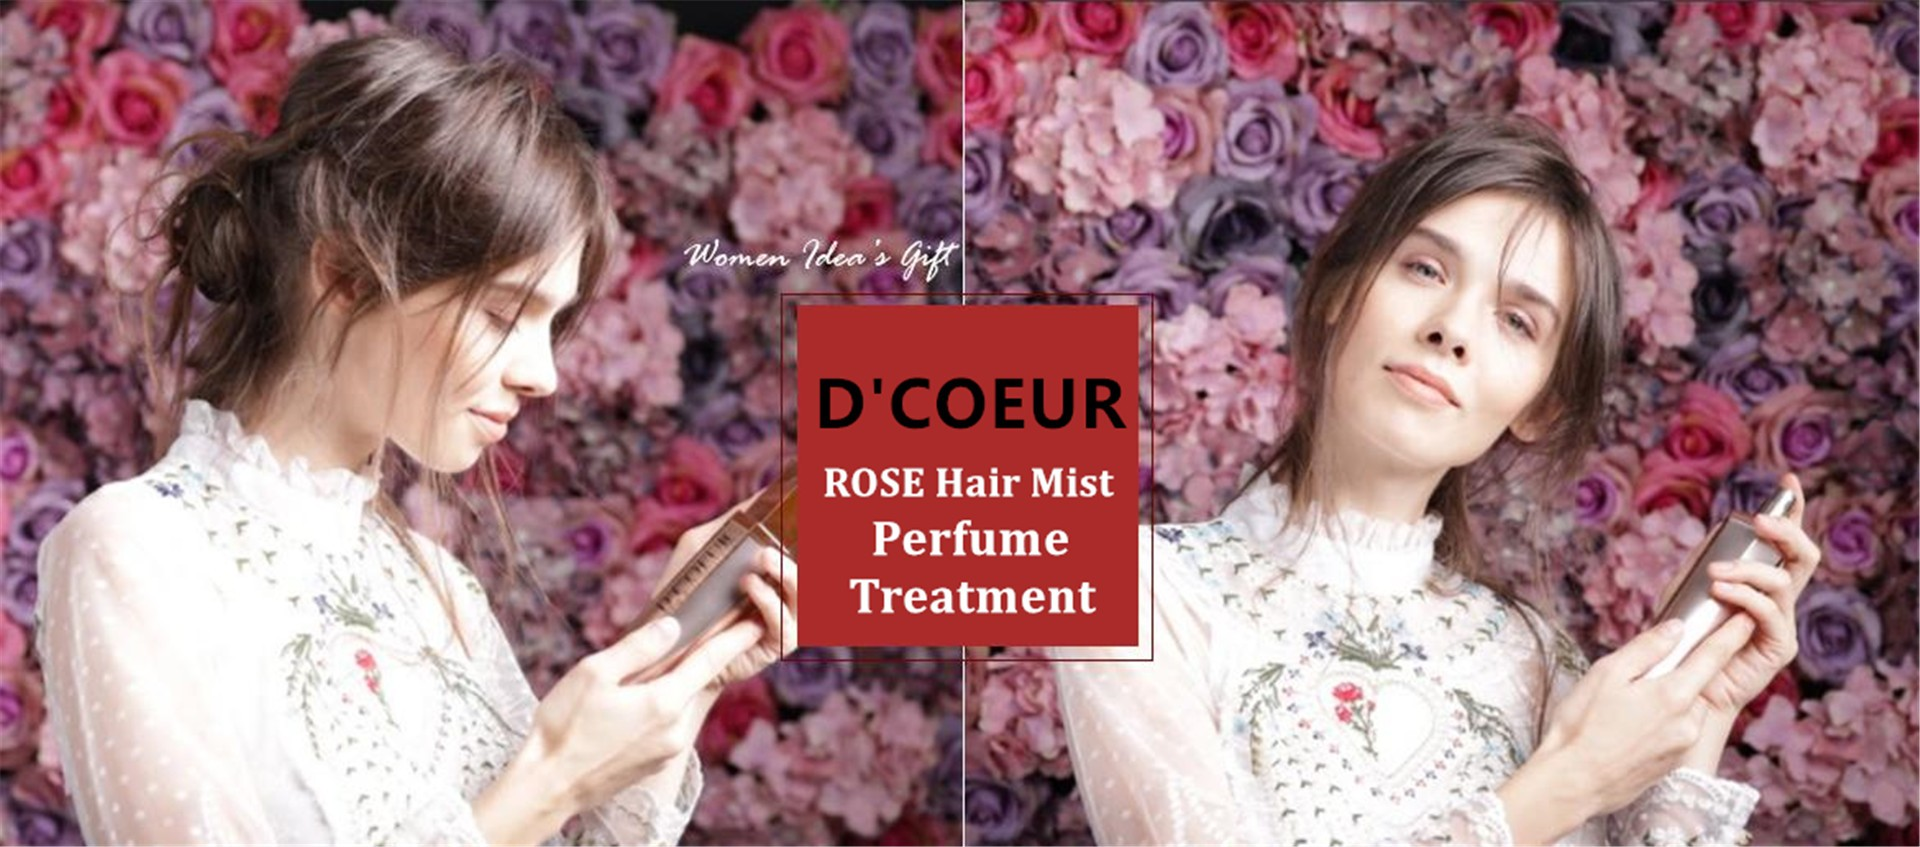 AD021 D'COEUR ROSE Hair Mist Treatment